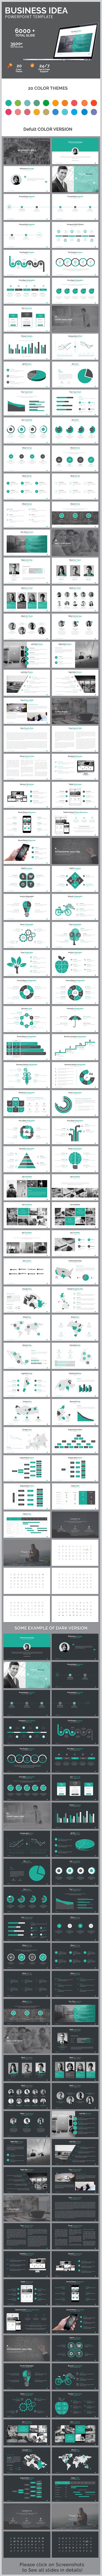 Business Idea Powerpoint Template - PowerPoint Templates Presentation Templates